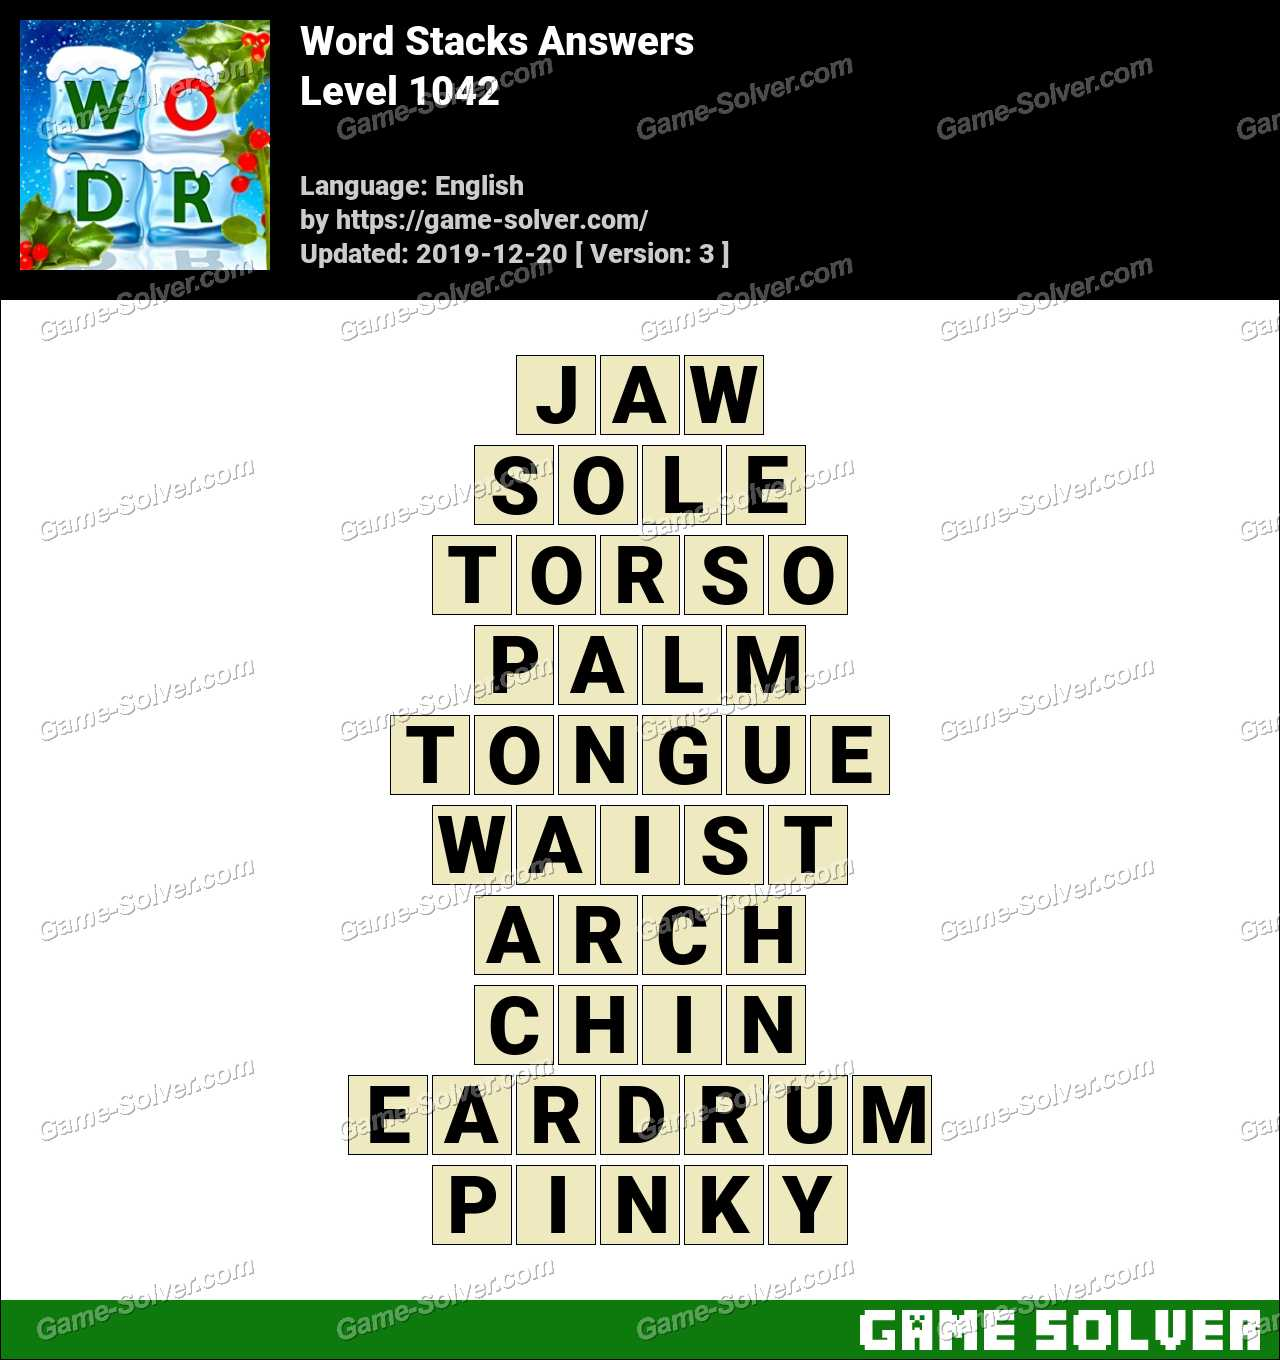 Word Stacks Level 1042 Answers